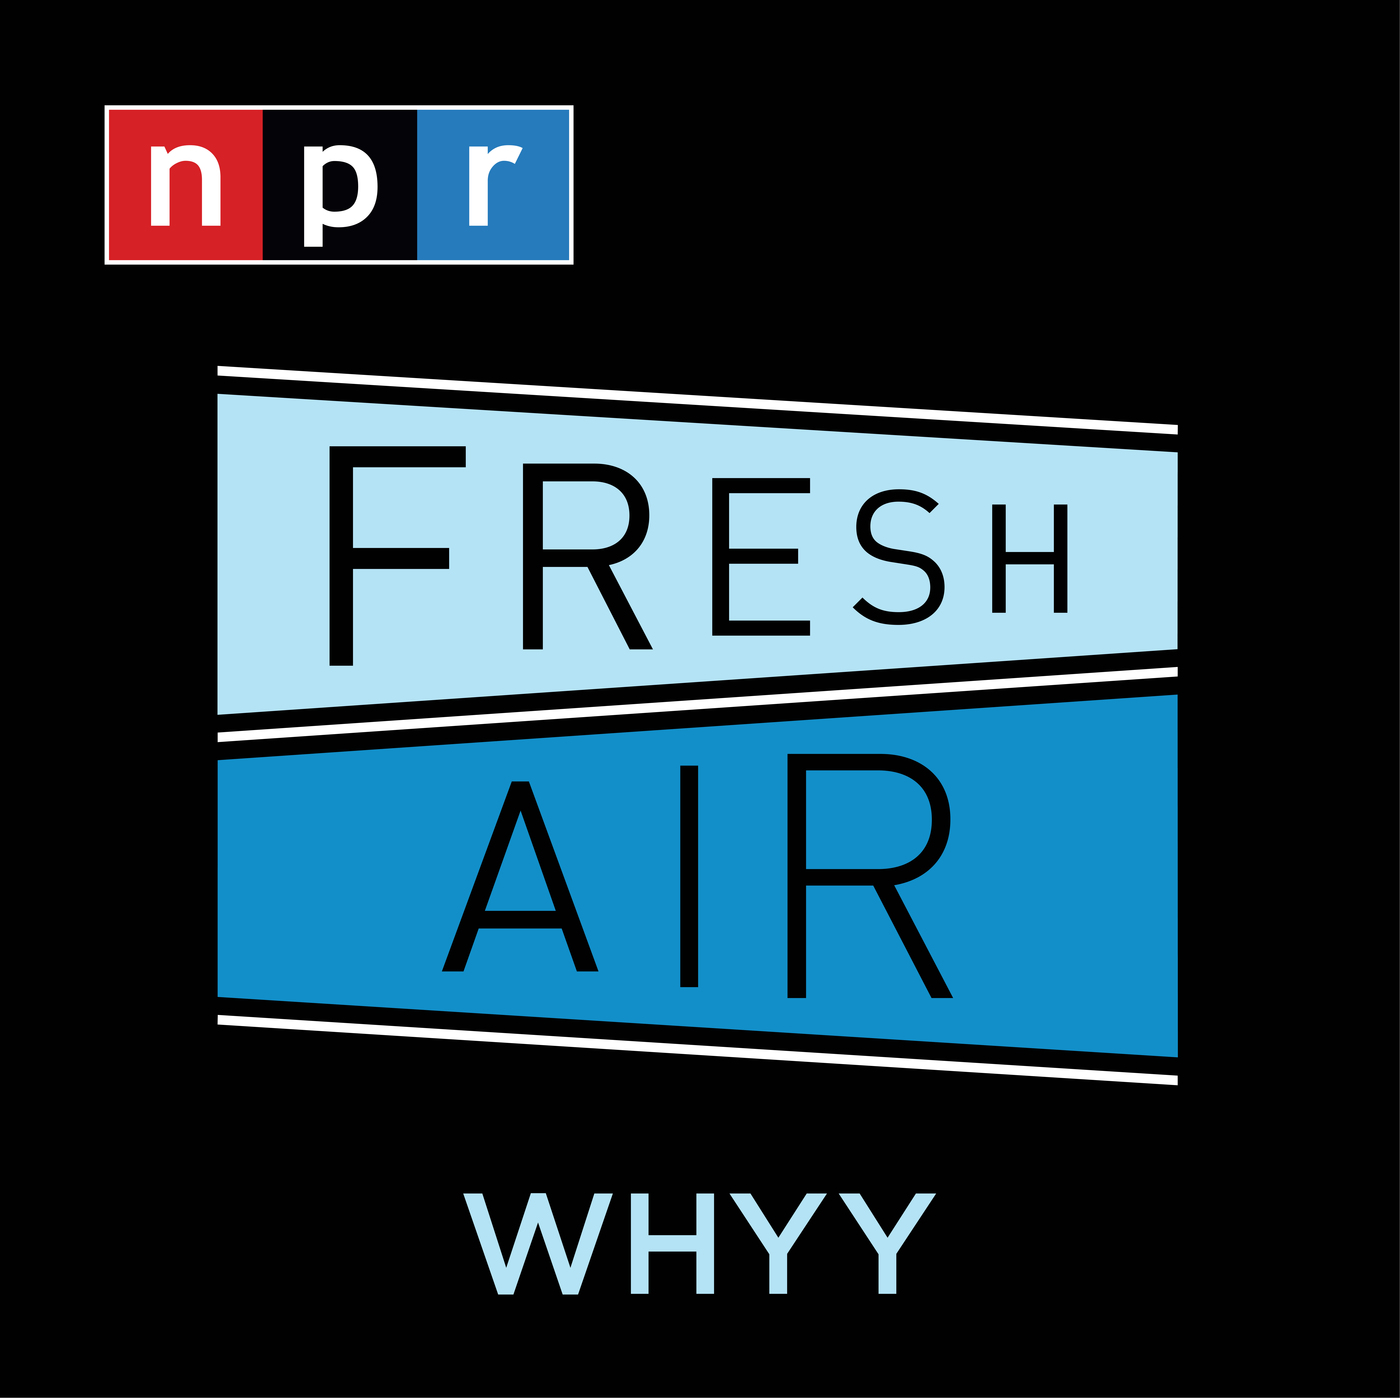 FRESH AIR - This was the first podcast I ever listened to. I grew up hearing Terry Gross over the radio (Linda is a big fan) so naturally when I was getting into the podcast world I had to download Fresh Air. This magazine style podcast tackles anything arts, culture, politics, etc. Basically, if there's an important person in the world that you need to know about, Terry Gross is probably interviewing them on her podcast.